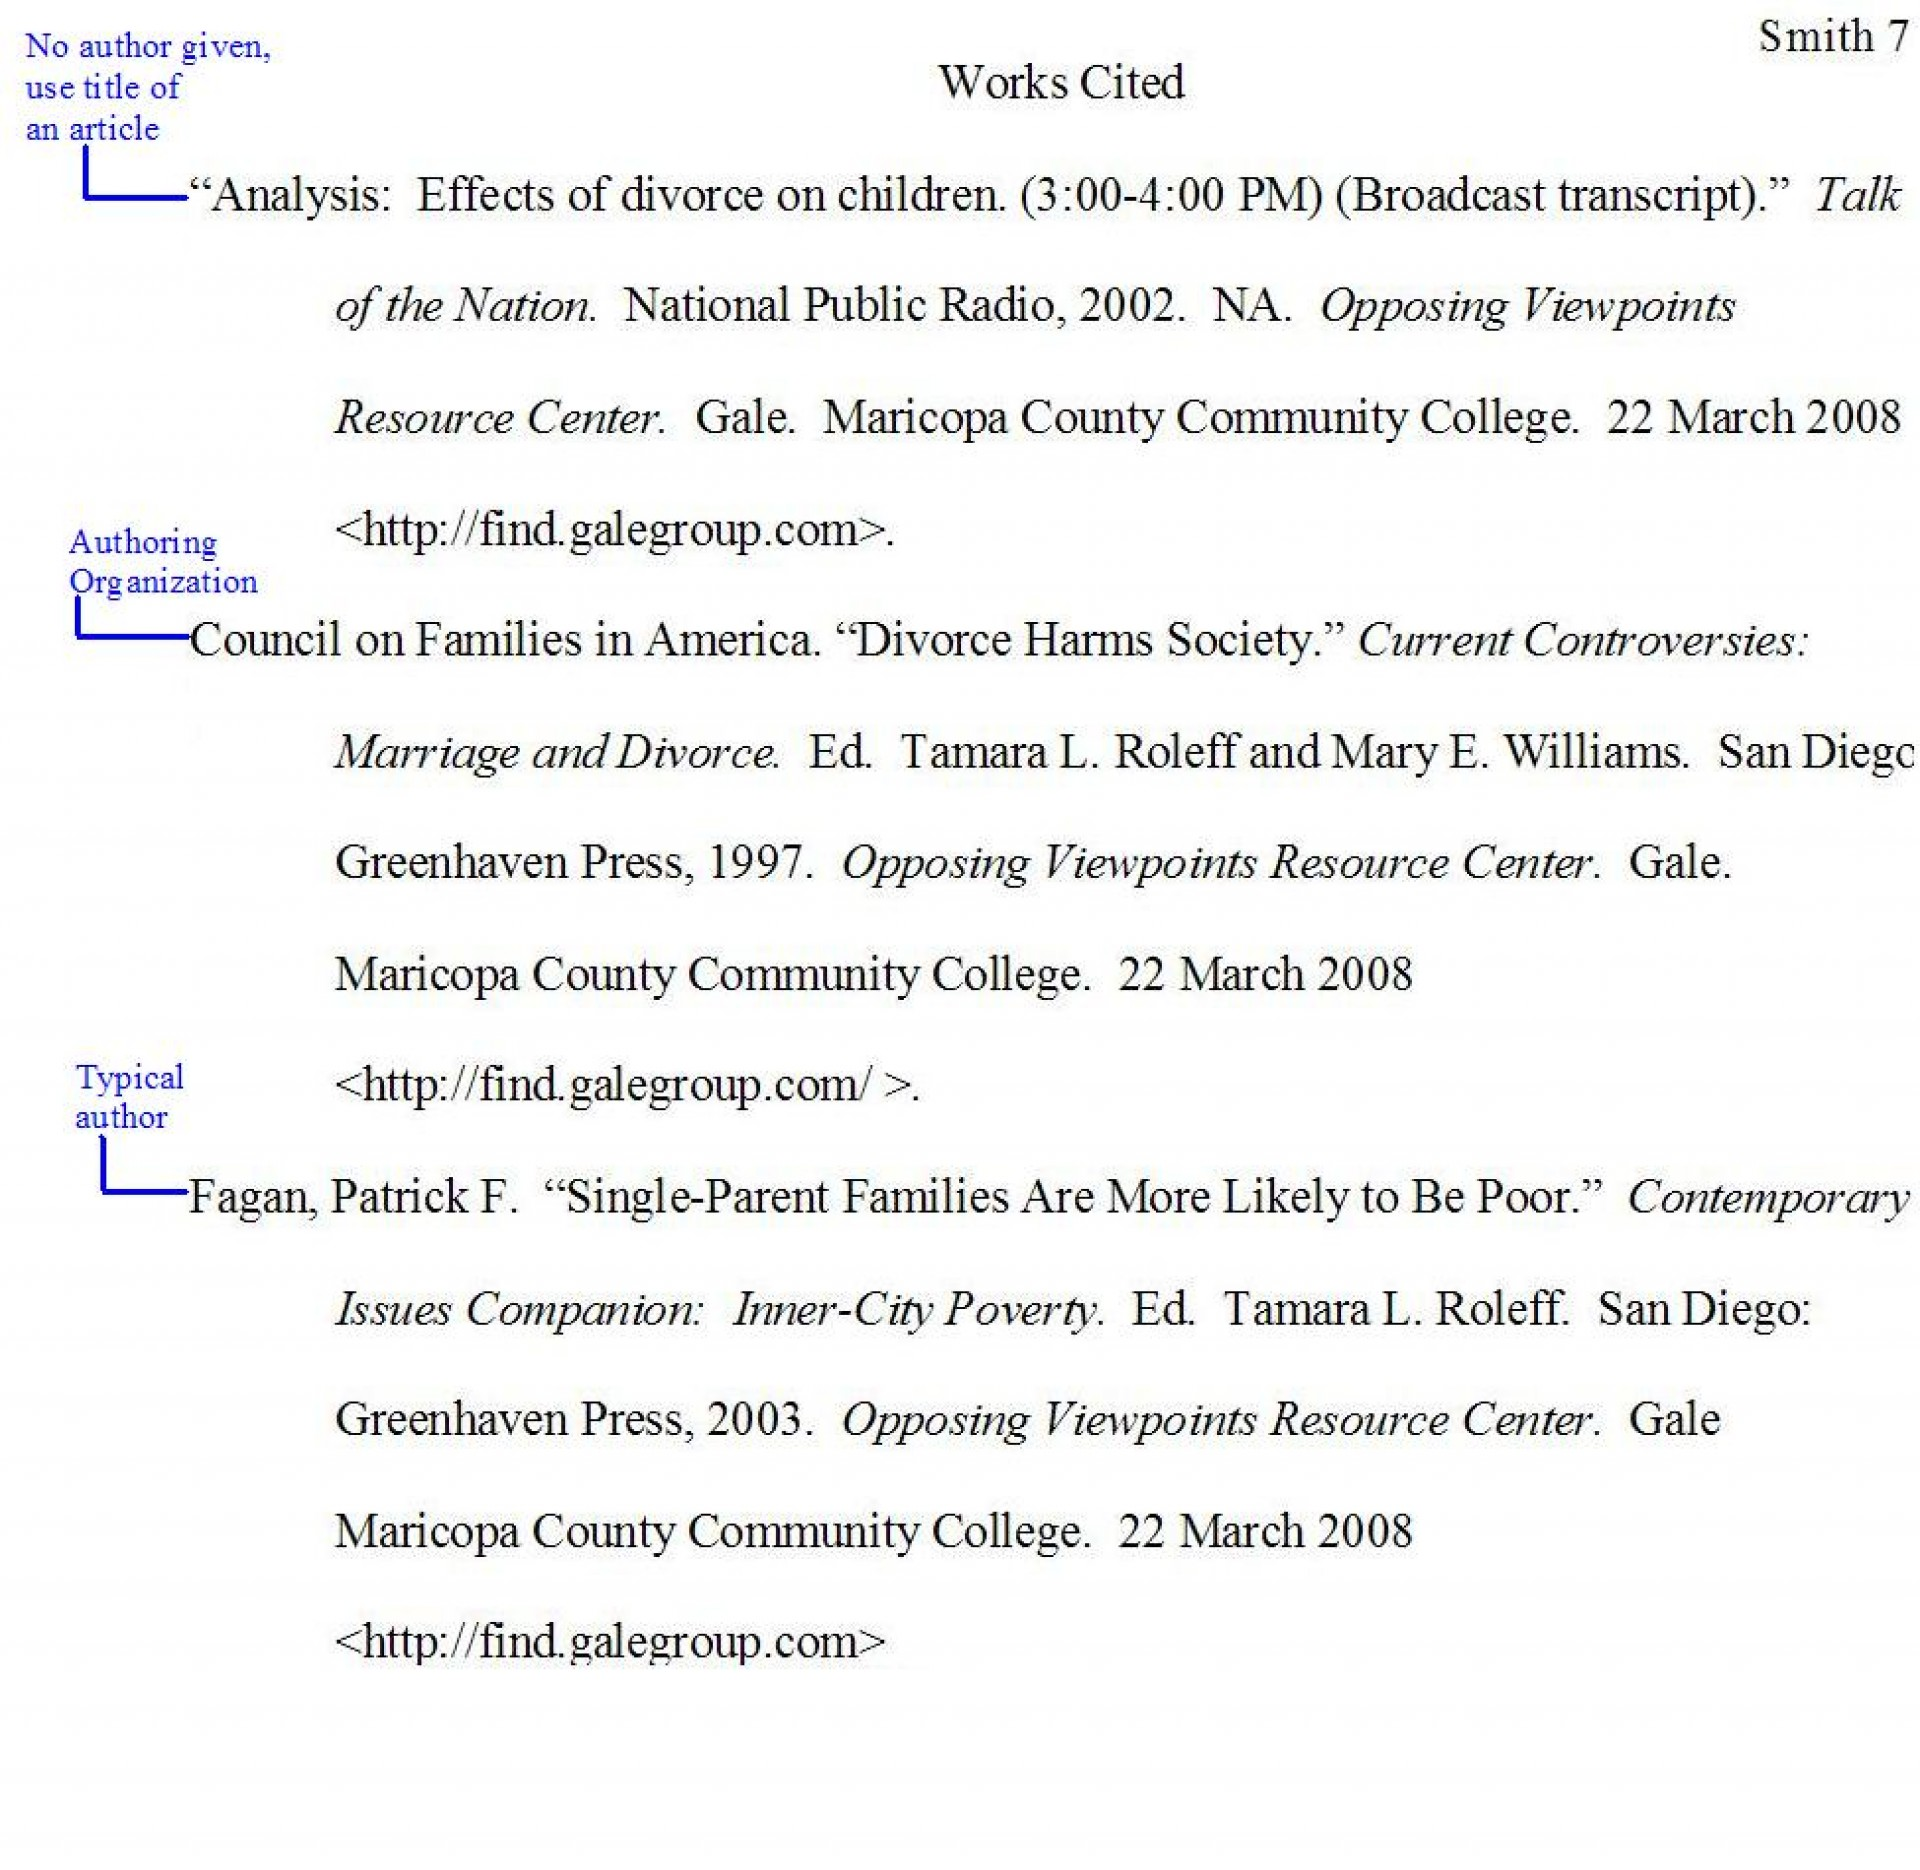 013 Samplewrkctd Jpg Essay Example How To Reference Book In Magnificent A An Mla Properly Cite Quote 1920